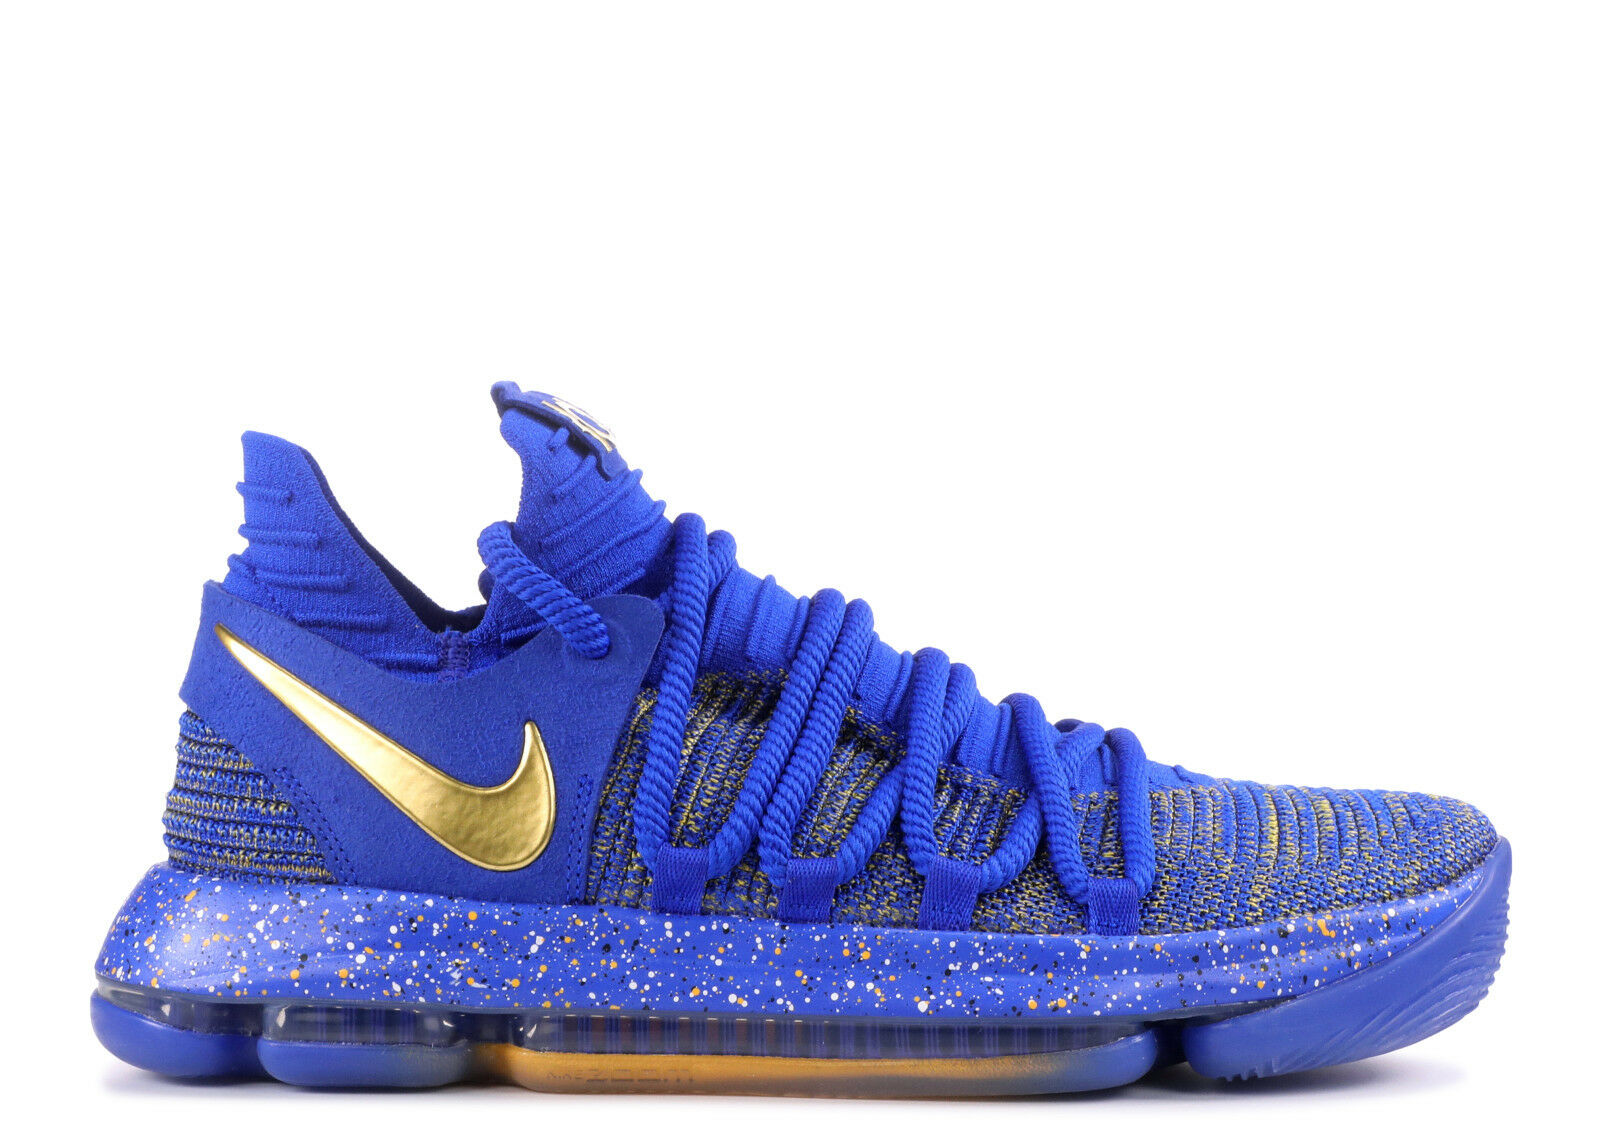 buy online 5849e 0d5e6 Nike KD 10 X Finals MVP golden State Warriors Size 11. 897815-403 jordan  kobe ncdprs1102-Athletic Shoes